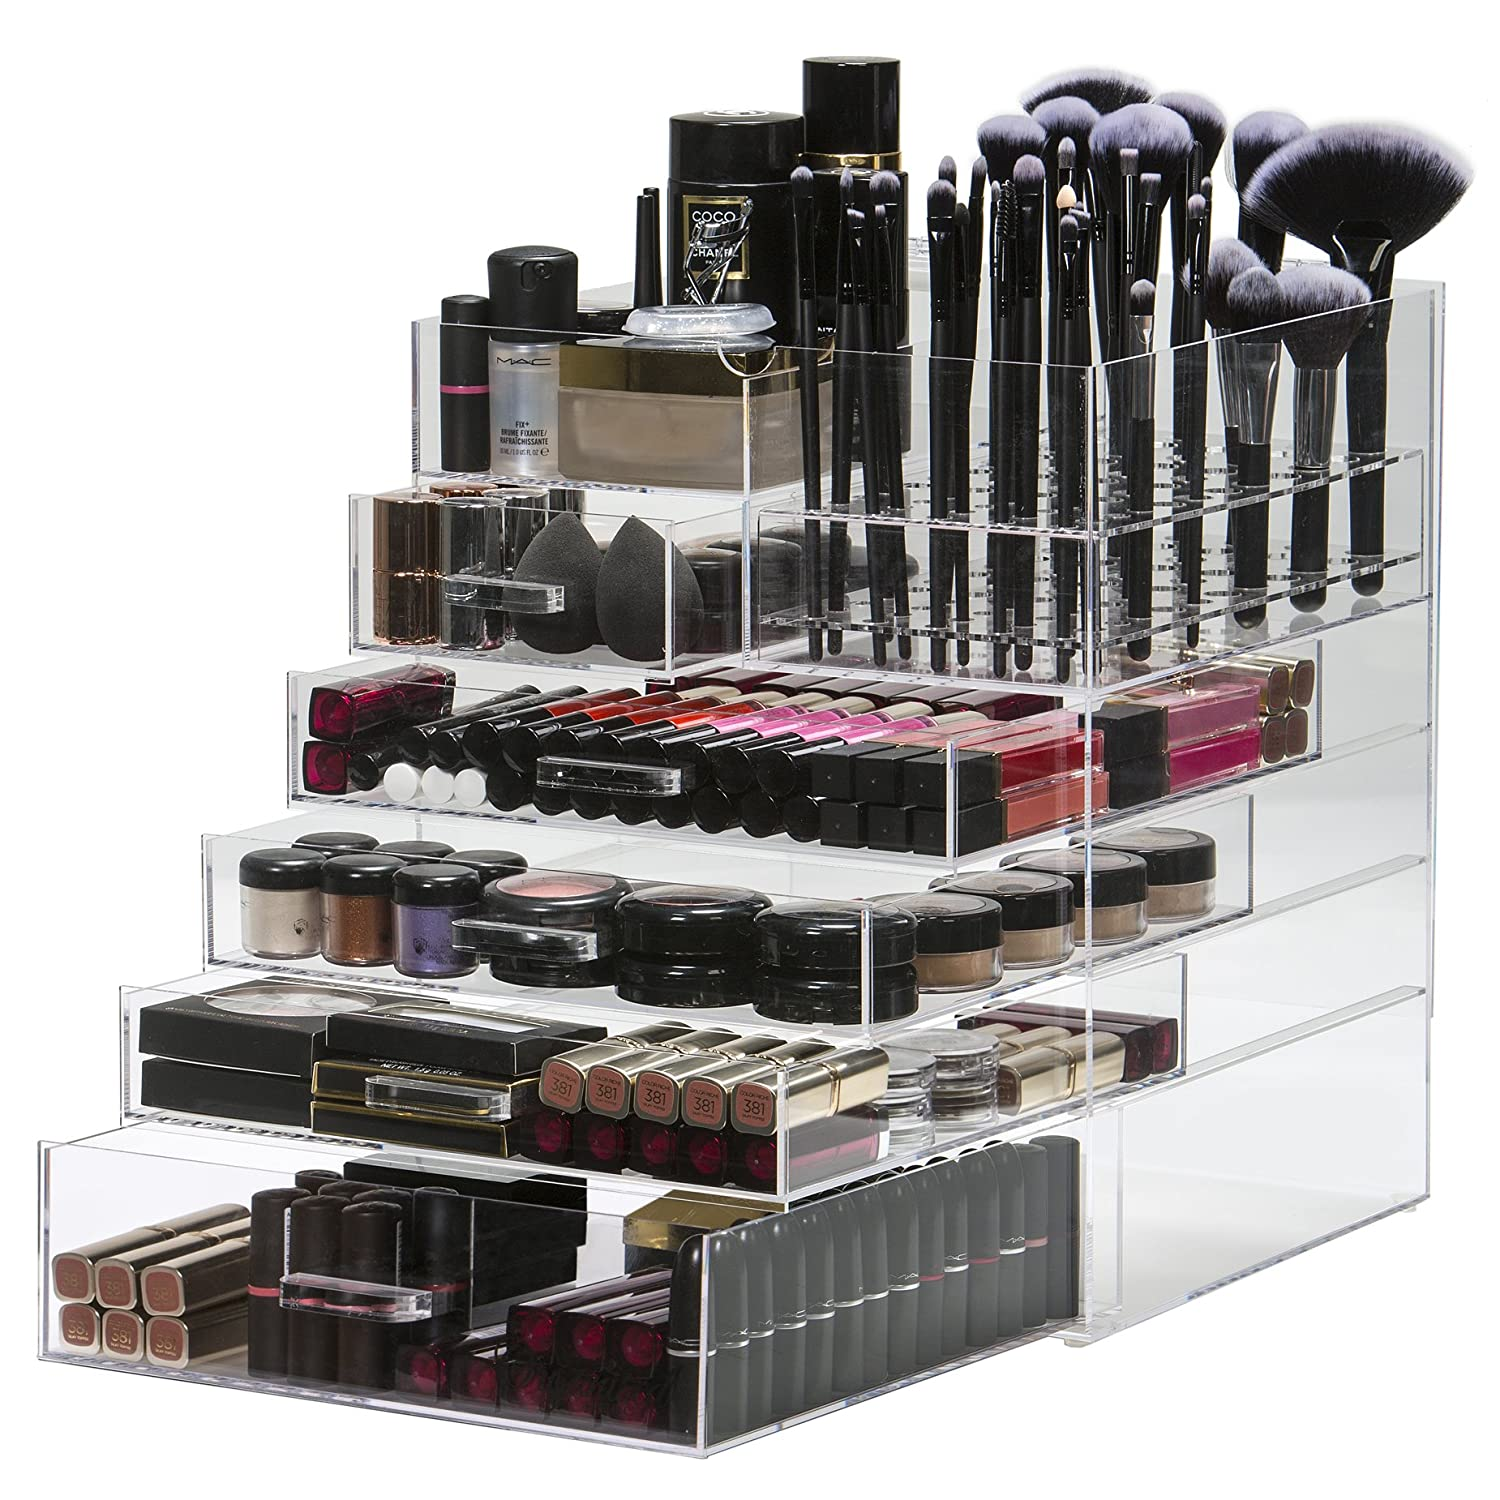 Large 6 Tier Acrylic Makeup Organiser Storage Cube Clear | Cosmetic Organiser 5 Drawer & Removable 52 Piece Makeup Brush Holder | By Organised Beauty